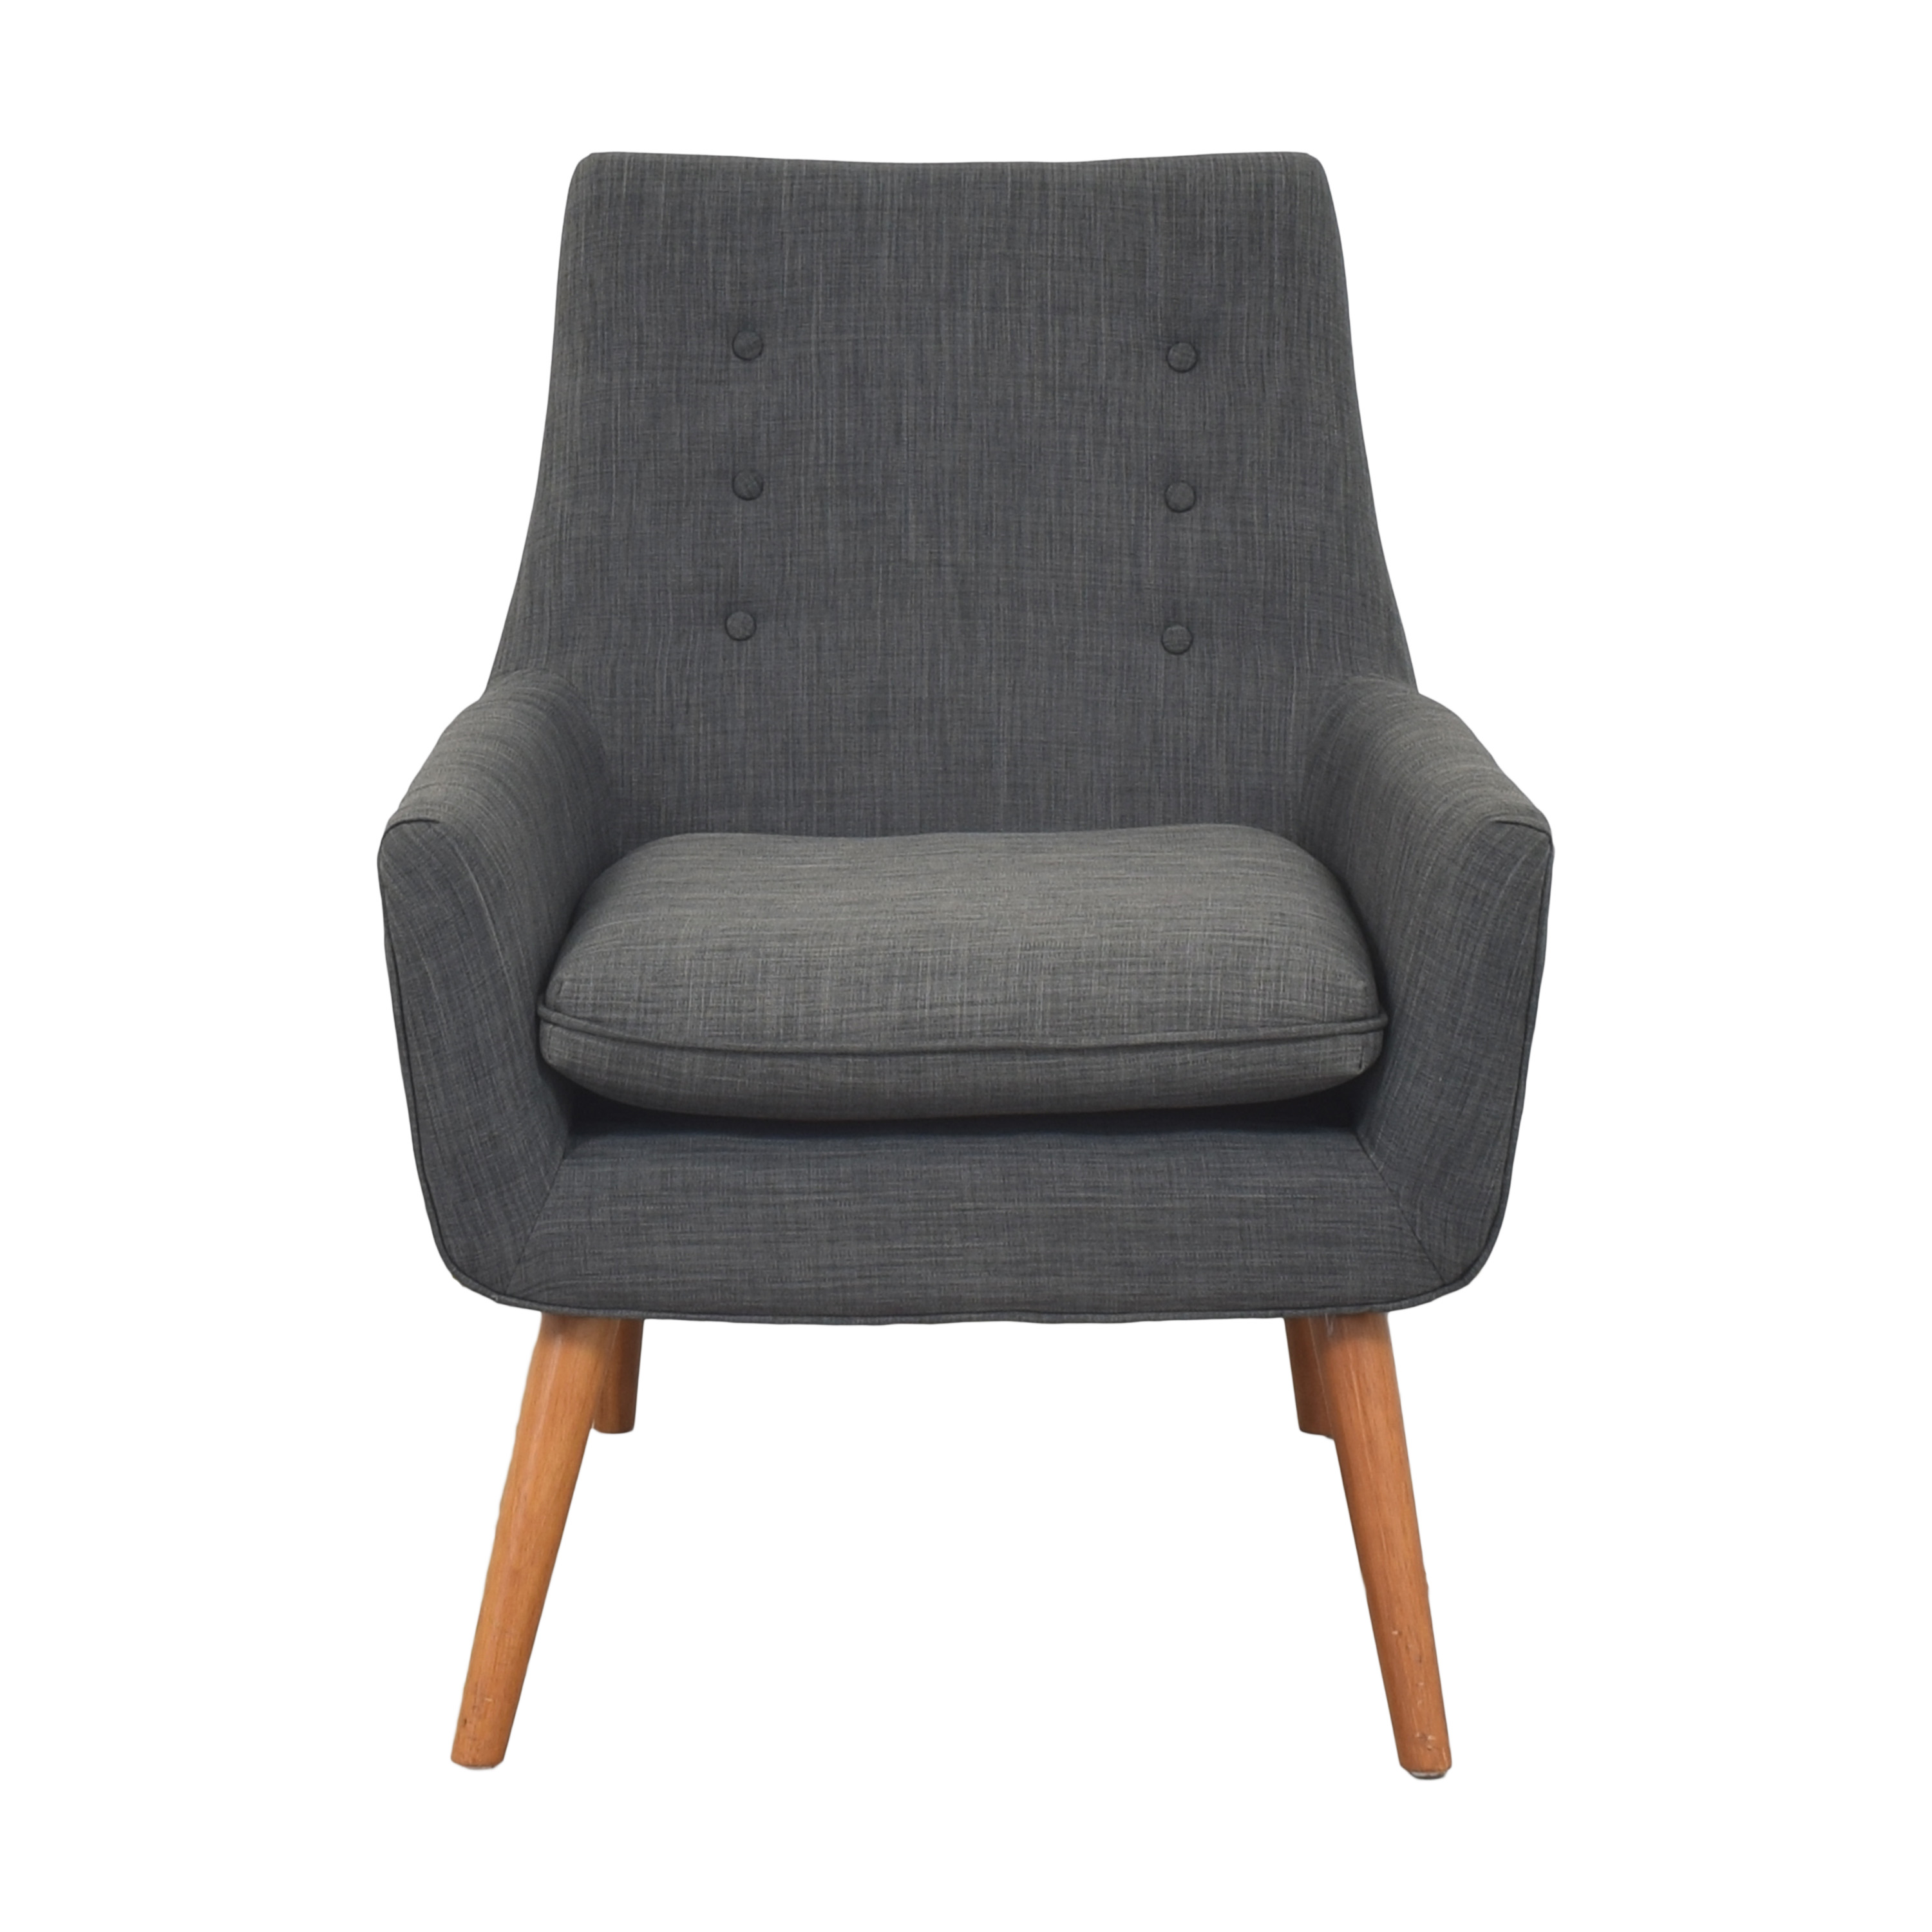 buy Adesso Adesso Modern Accent Chair  online